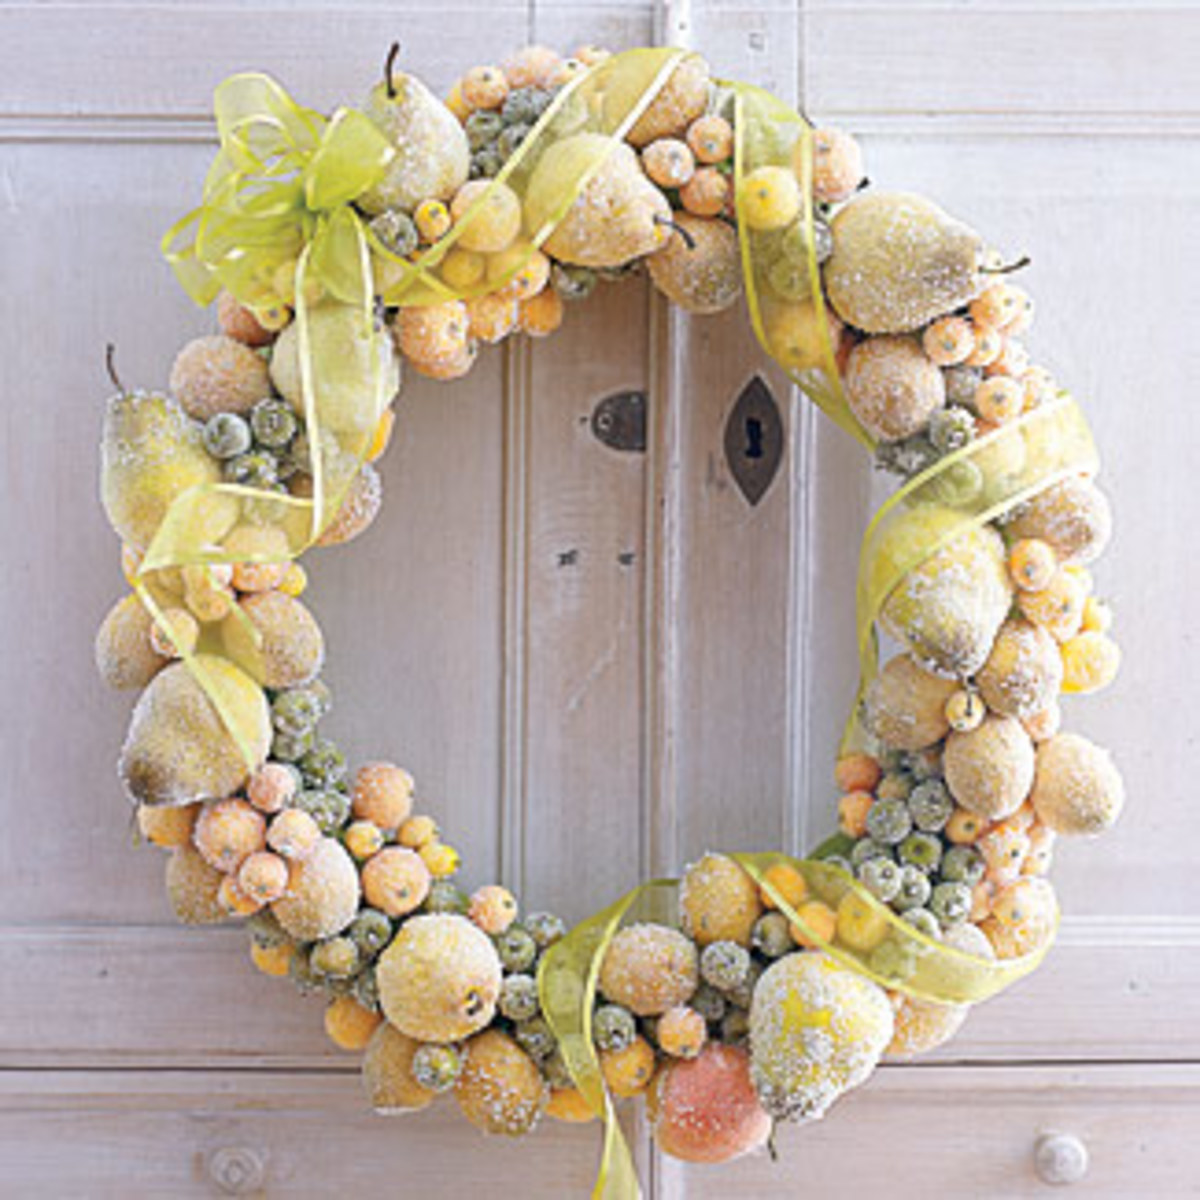 Sugar coated Christmas Wreath goodhousekeeping.com